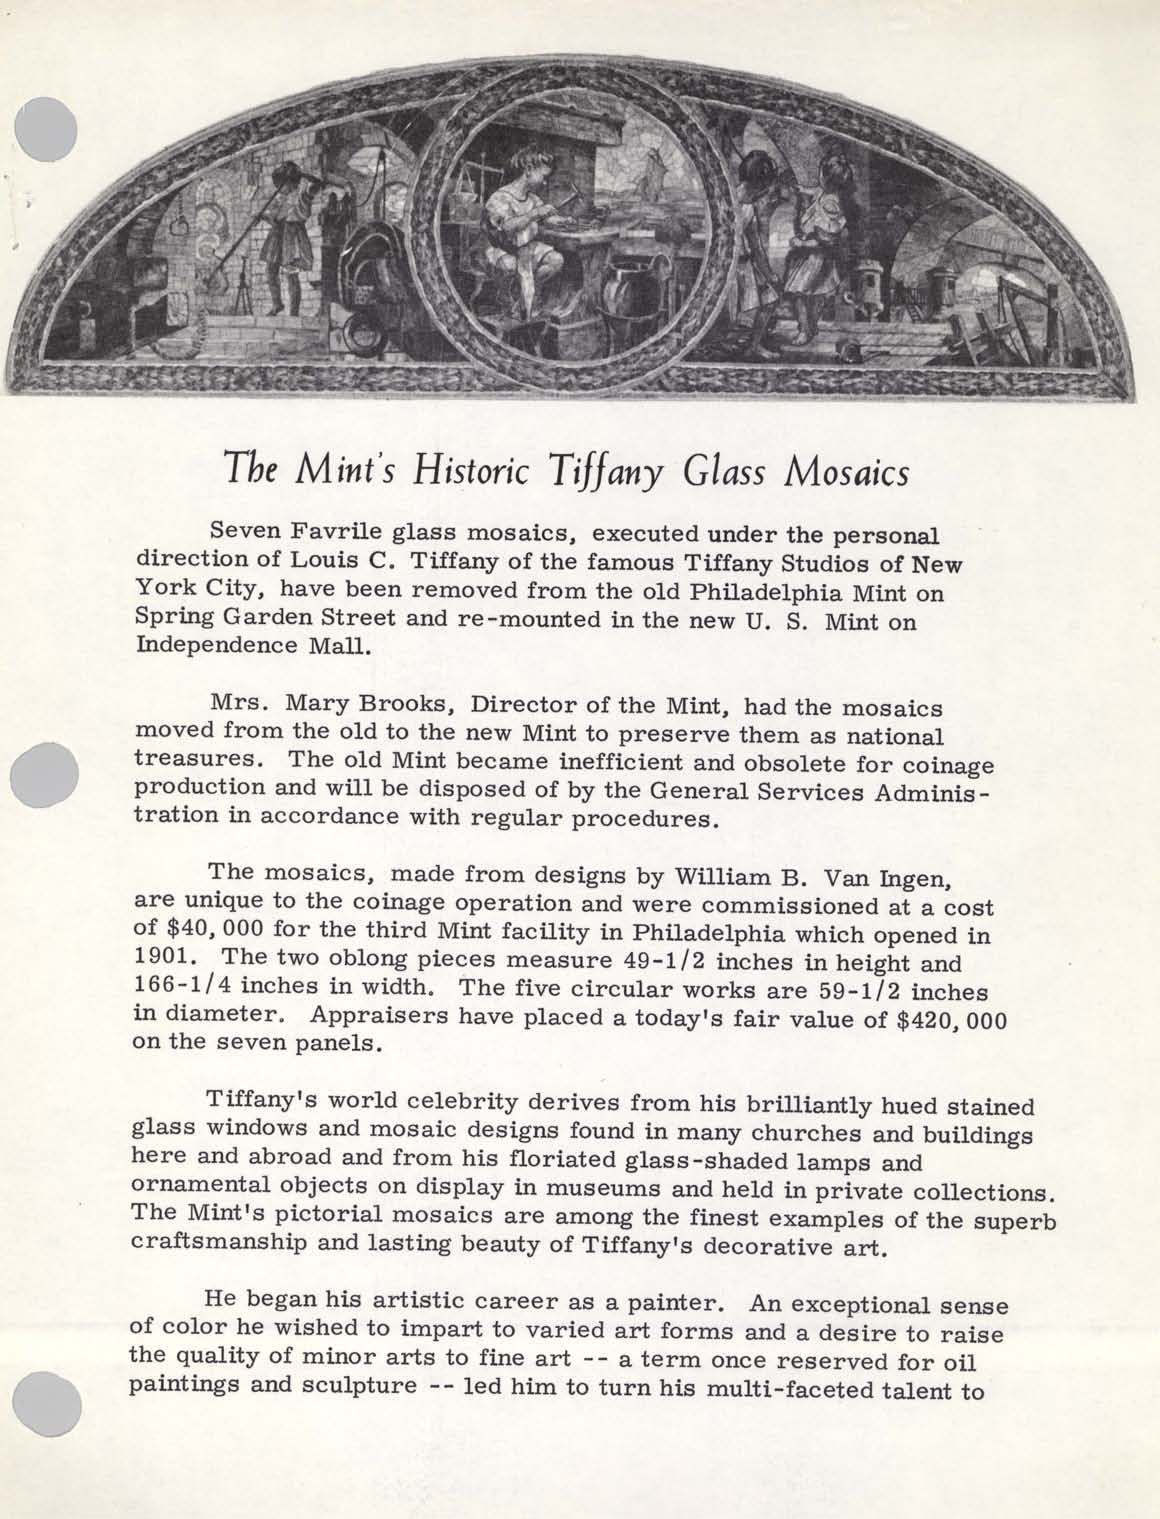 Unveiling Ceremony for Tiffany Mosaics, Page 2